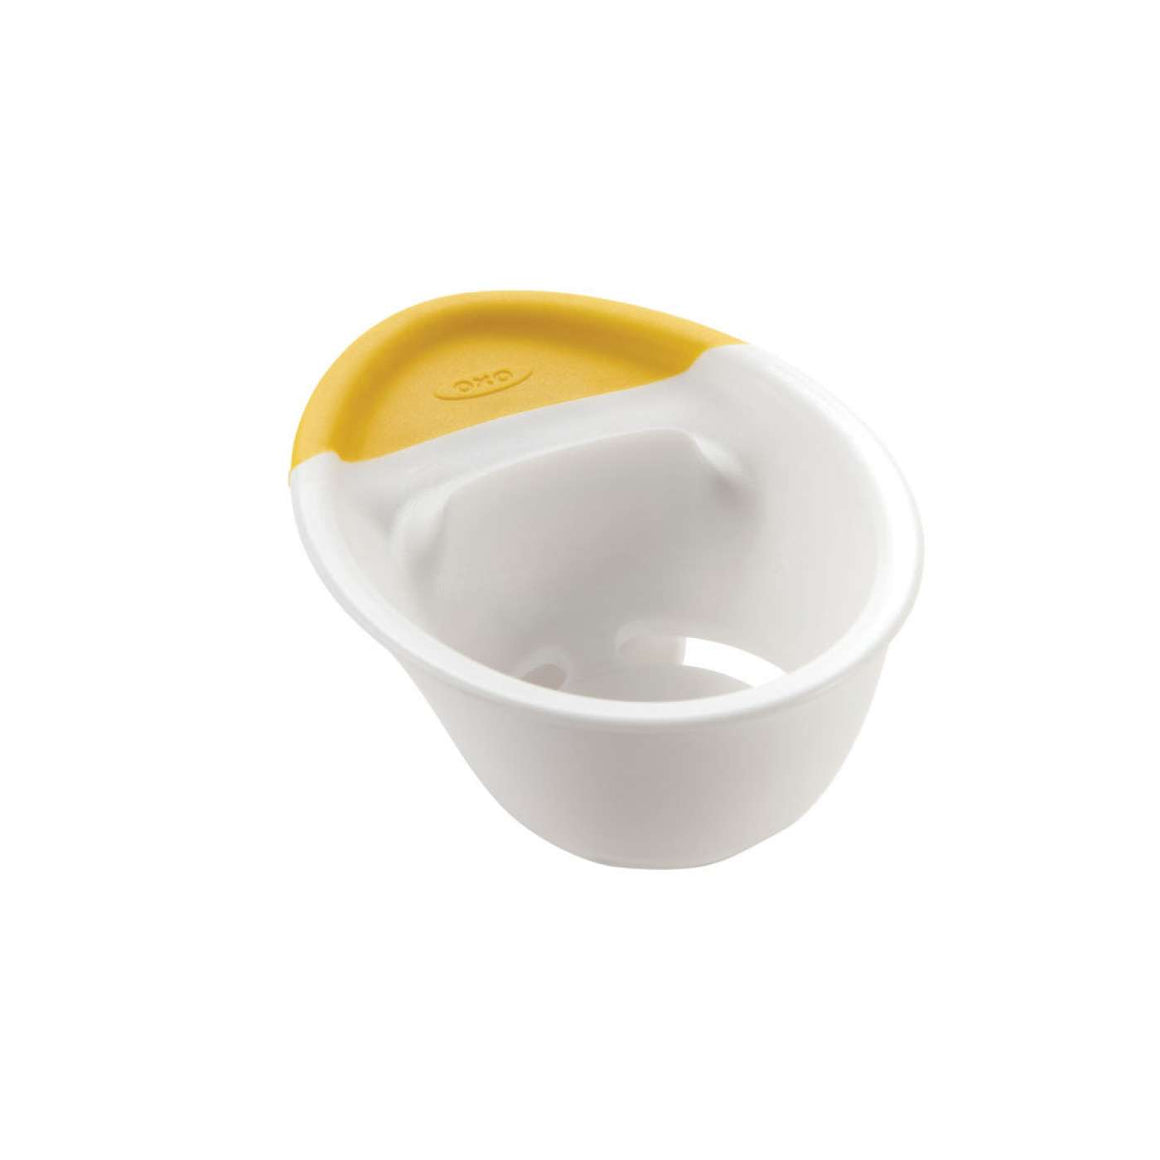 Good Grips 3-in-1 Egg Separator